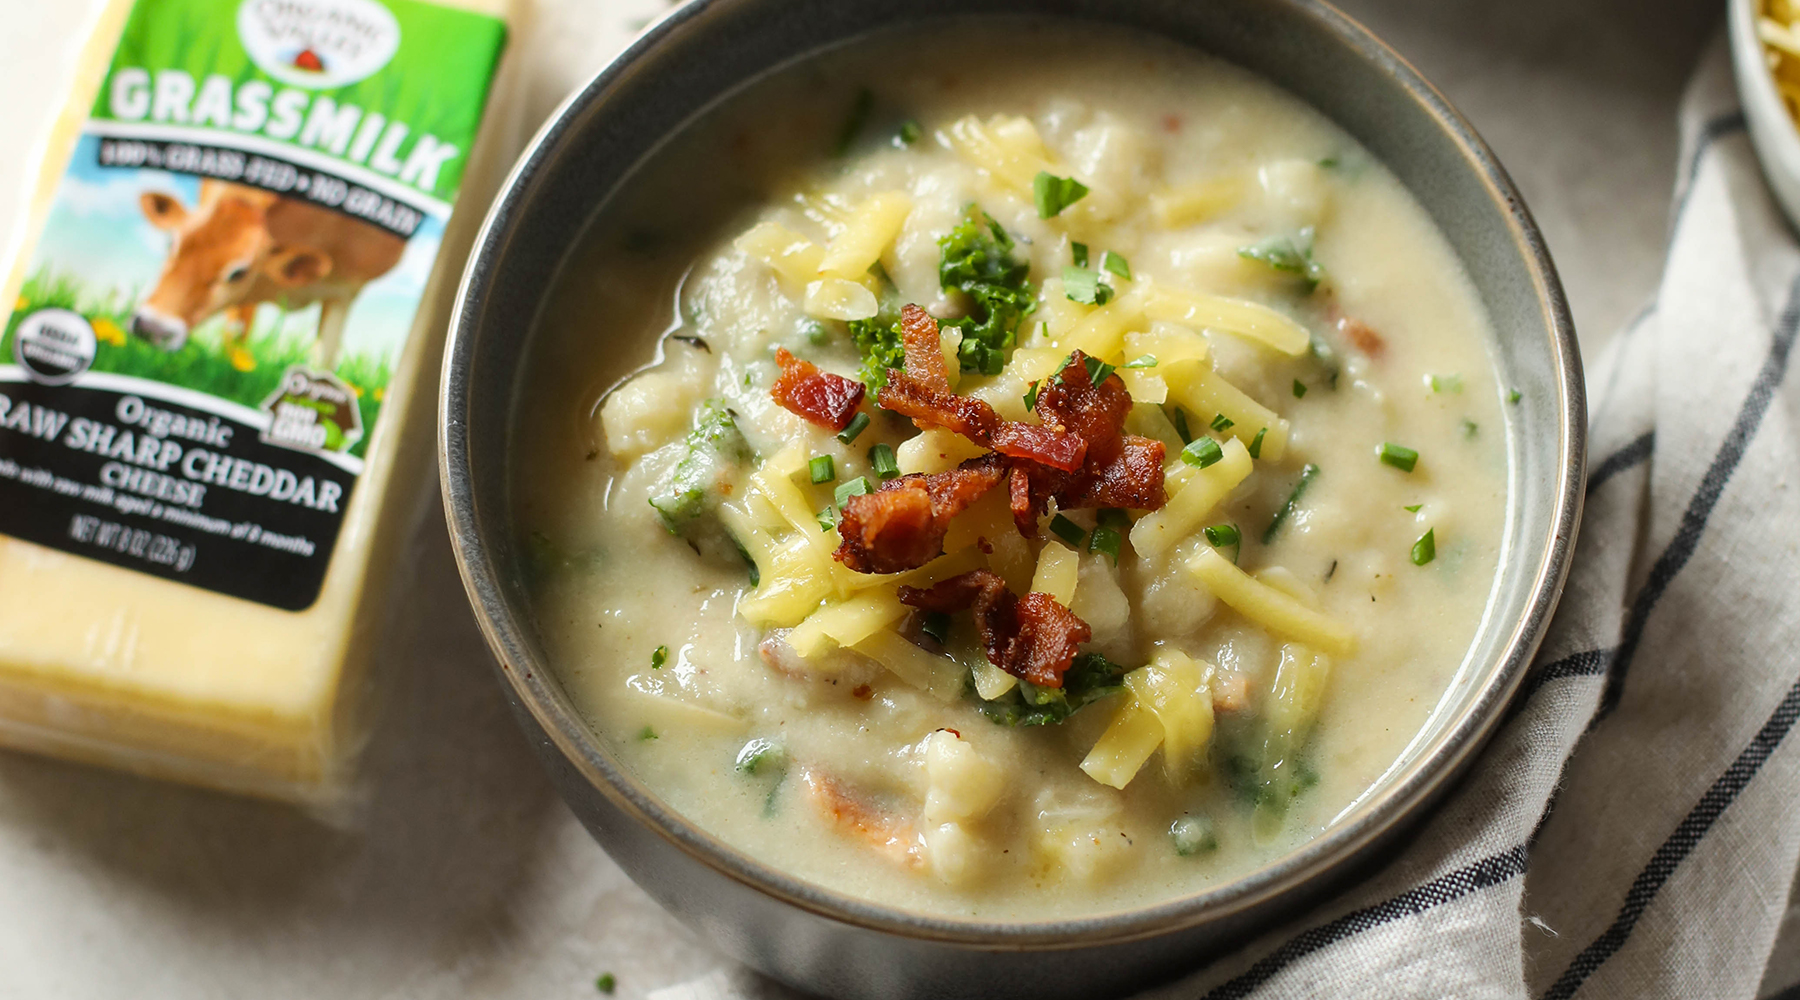 A bowl of Loaded Cheesy Cauliflower Soup using Organic Valley's Grassmilk Cheddar, topped with bacon crumbles. Image credit: the Real Food Dietitians.